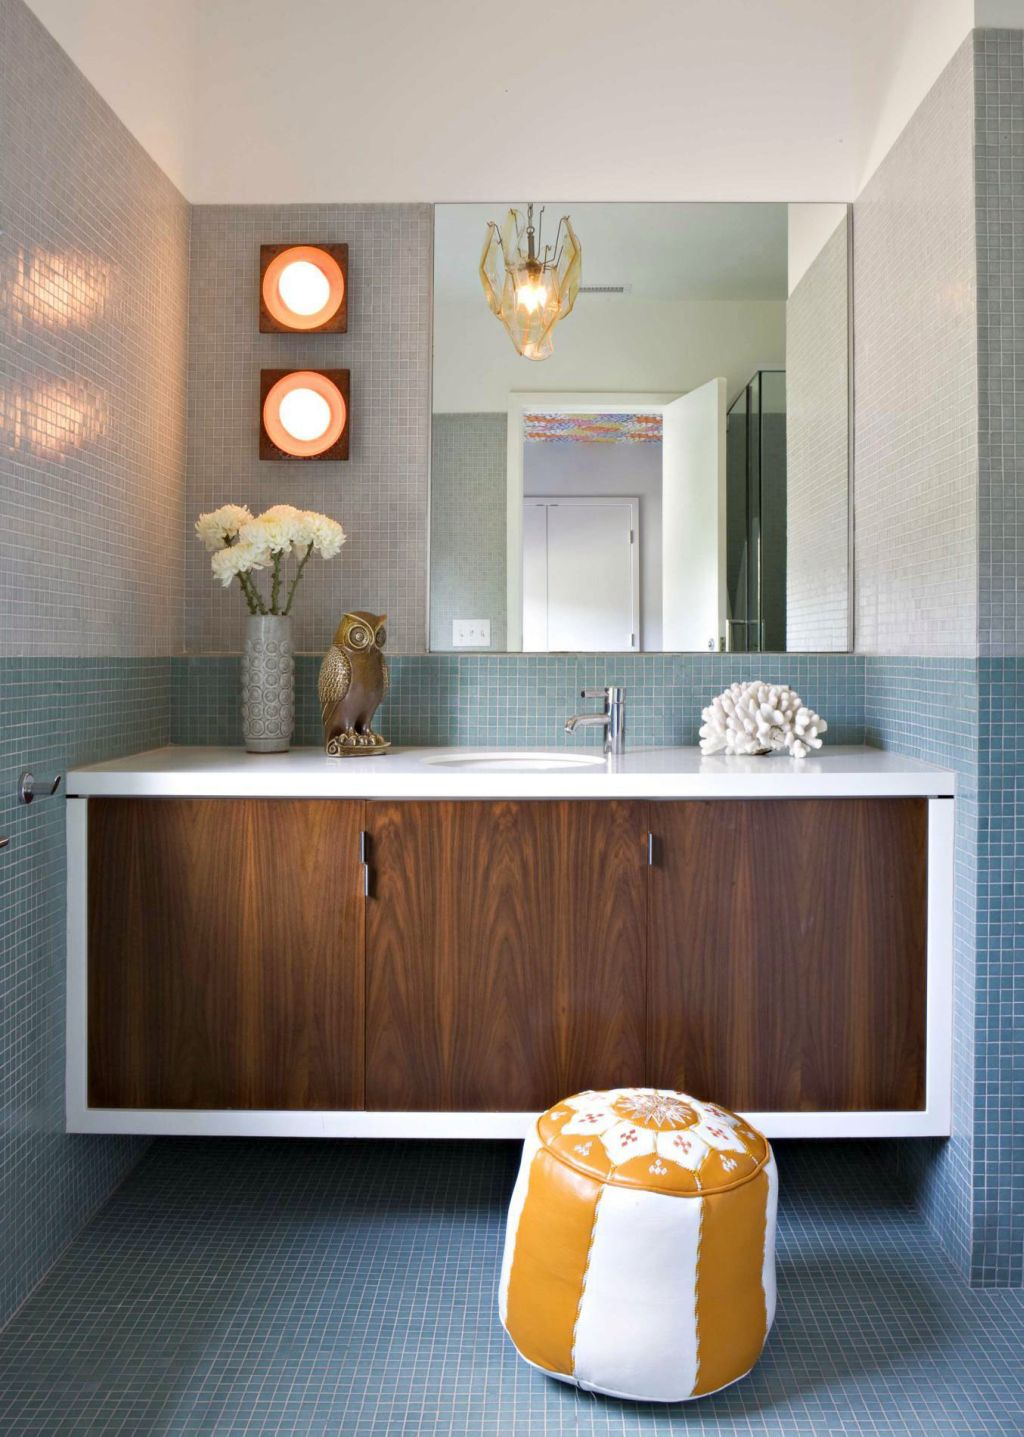 Modern bathroom vanity lights